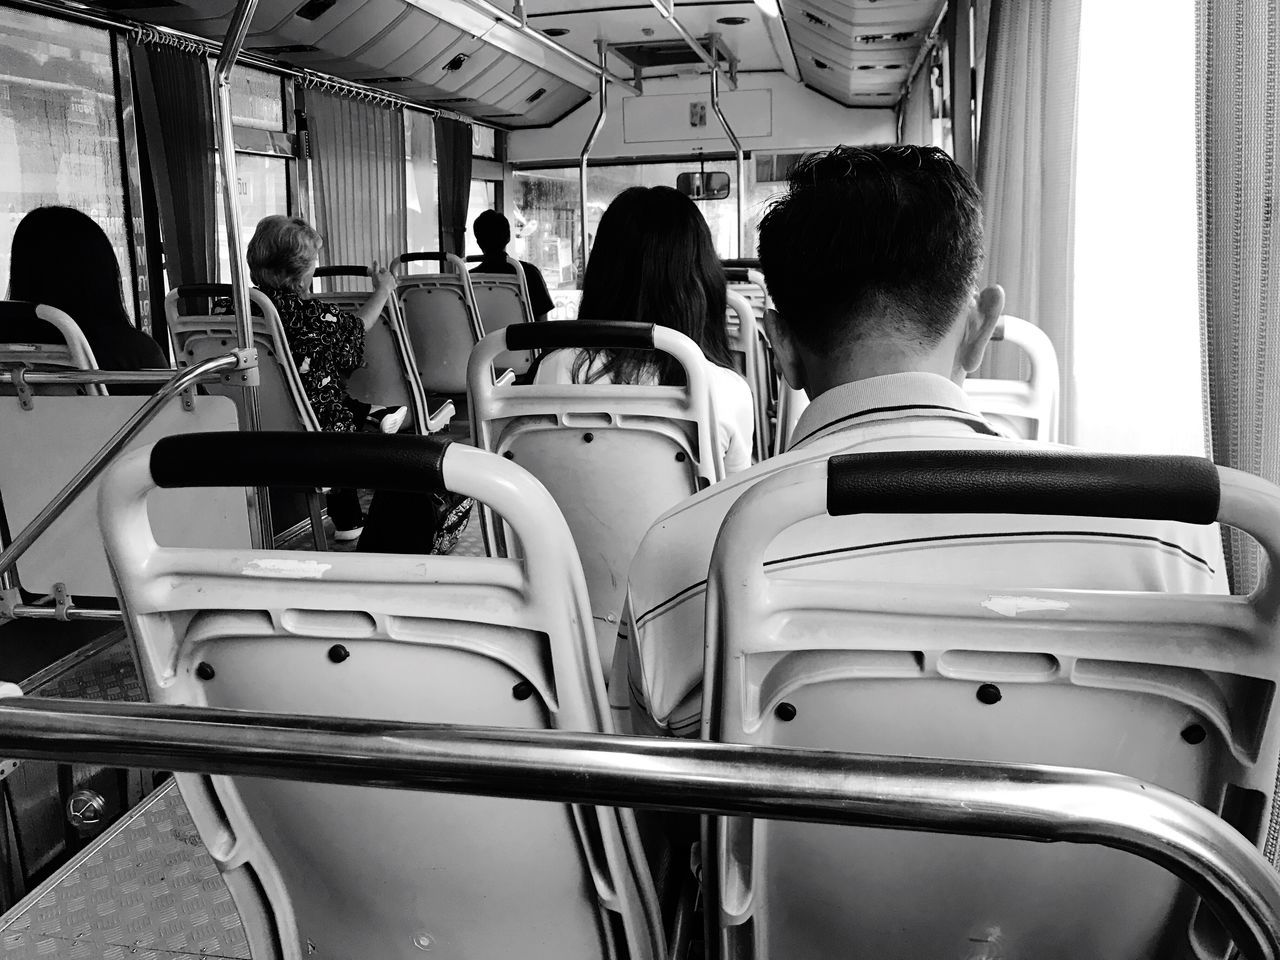 Bus People Sit Sitting Vehicle Interior Transportation Public Transportation Vehicle Seat Mode Of Transport Train - Vehicle Men Real People Passenger Bus Subway Train Indoors  Women Commuter Train Day Commuter Large Group Of People Young Adult Young Women